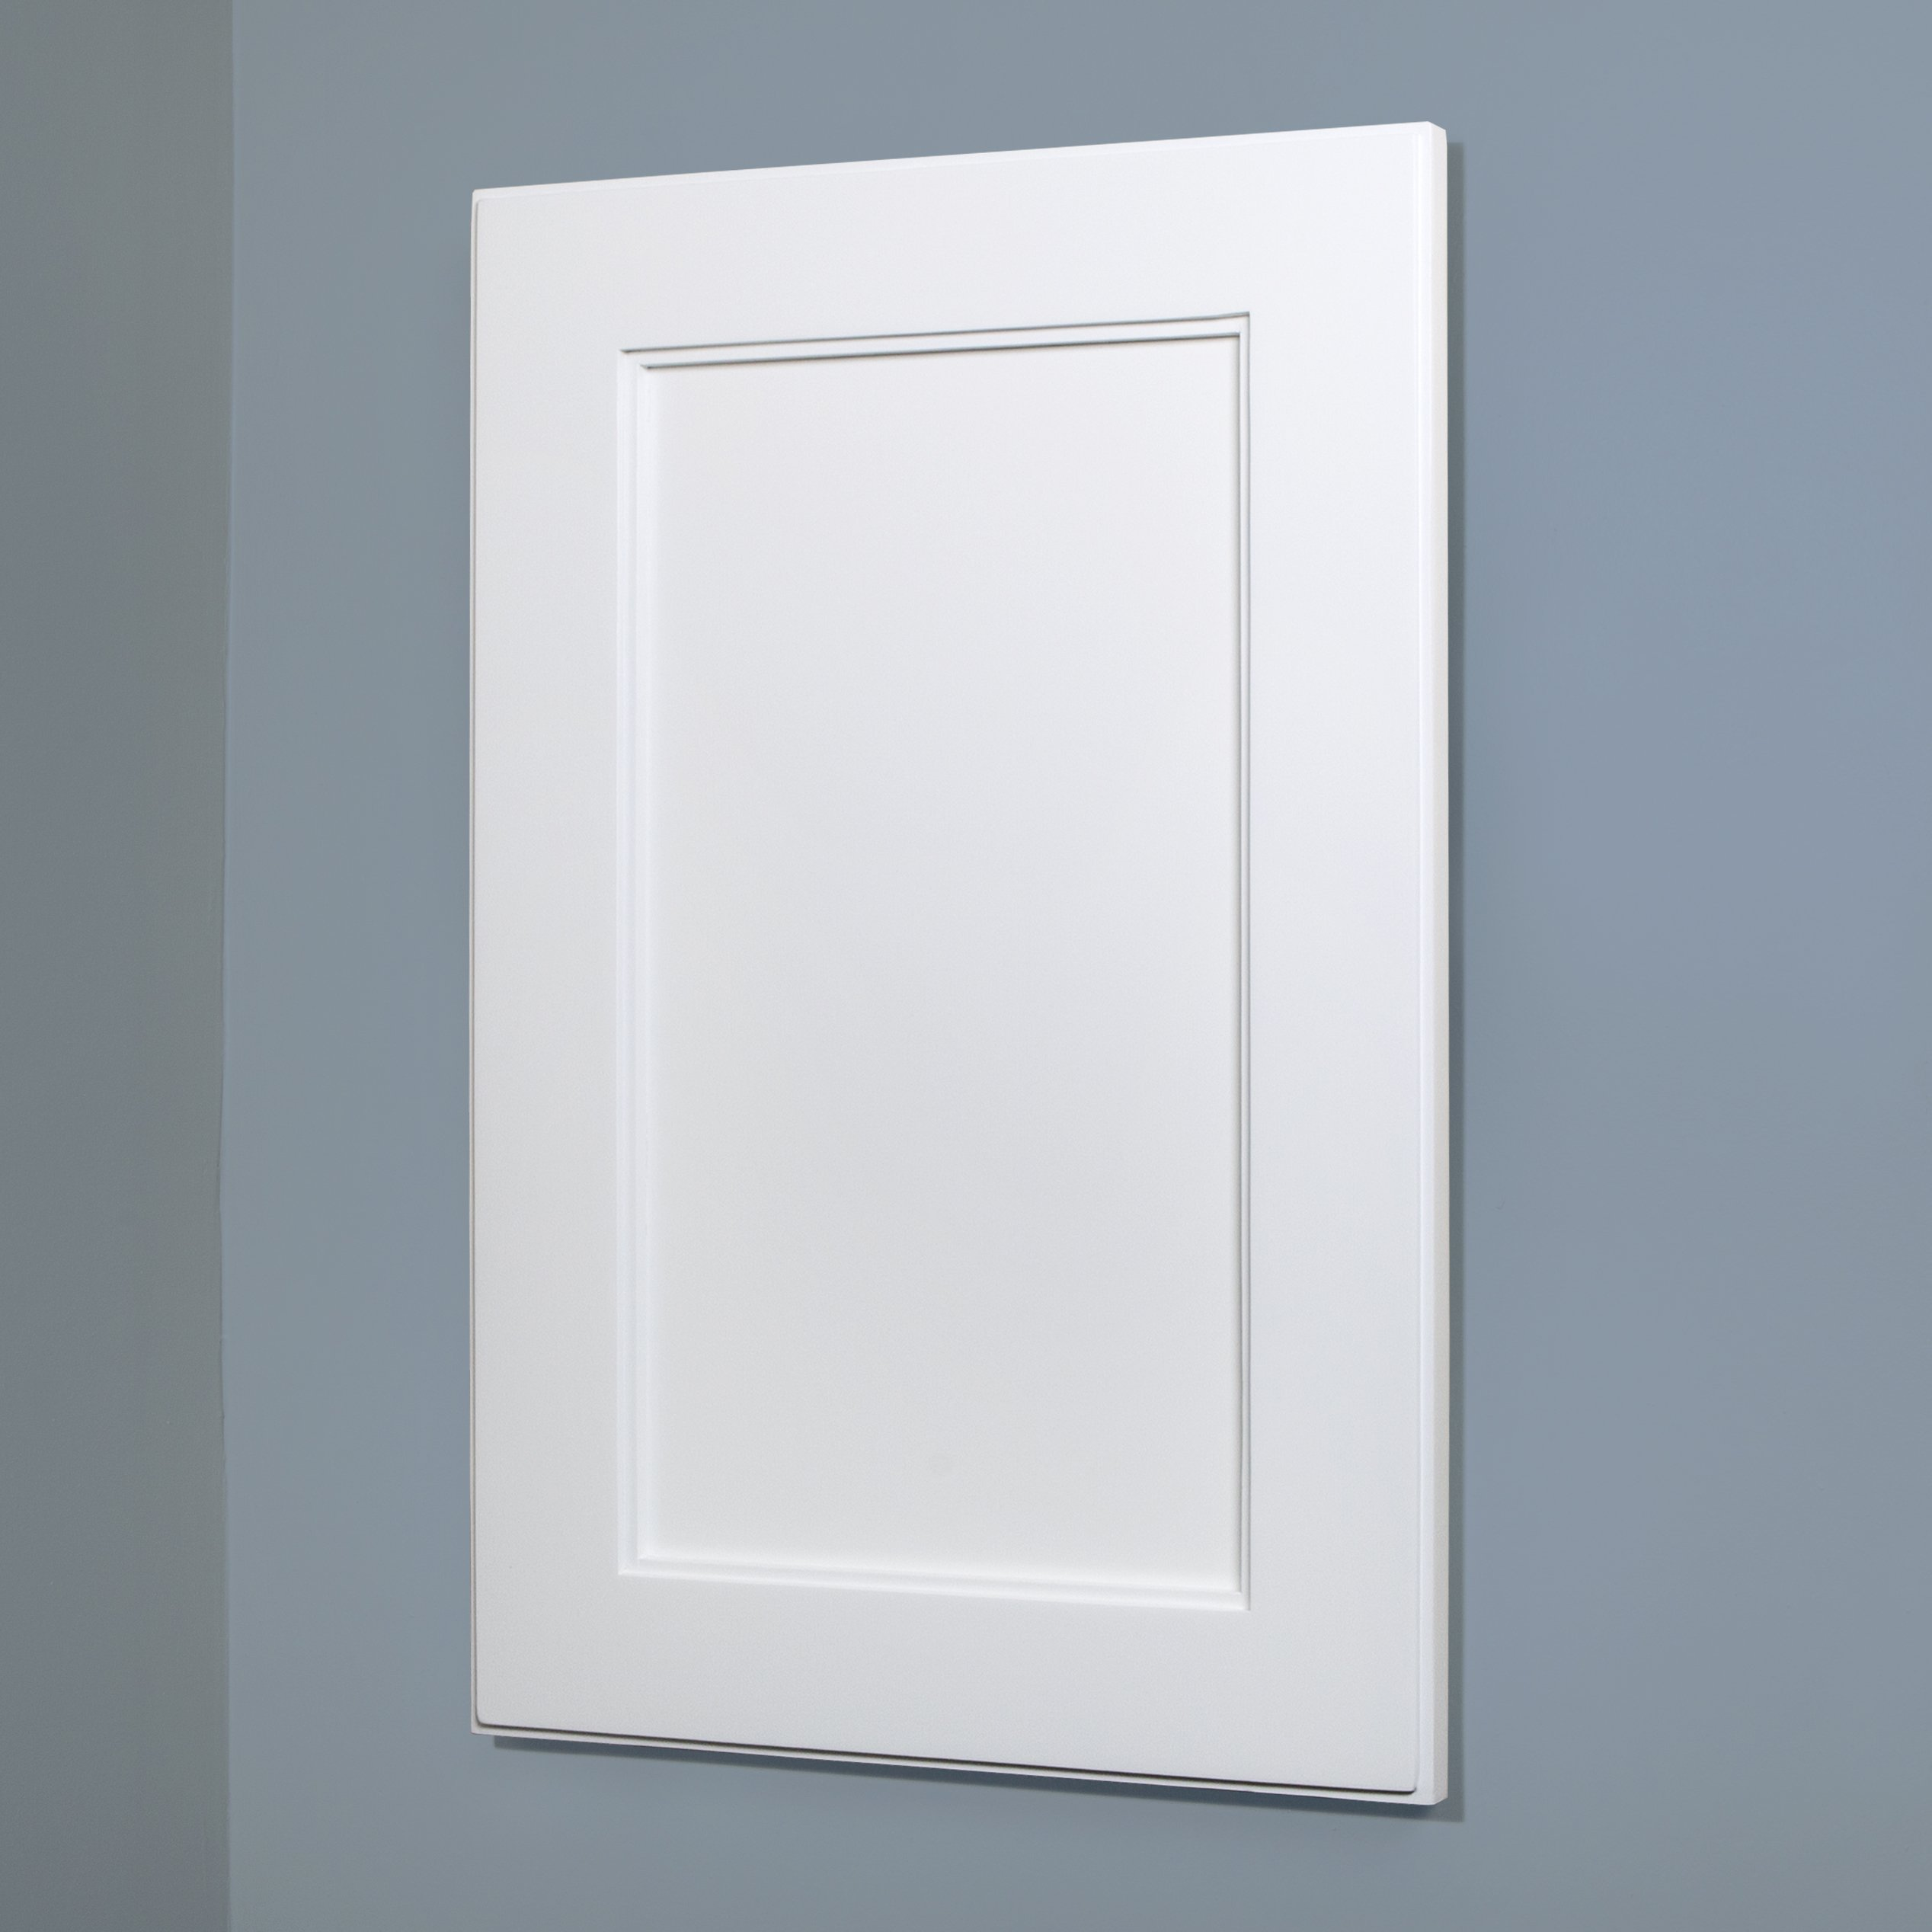 14x24 Shaker Style Recessed Medicine Cabinet by Fox Hollow Furnishings (Extra Large, White) by The Concealed Cabinet by iinnovators